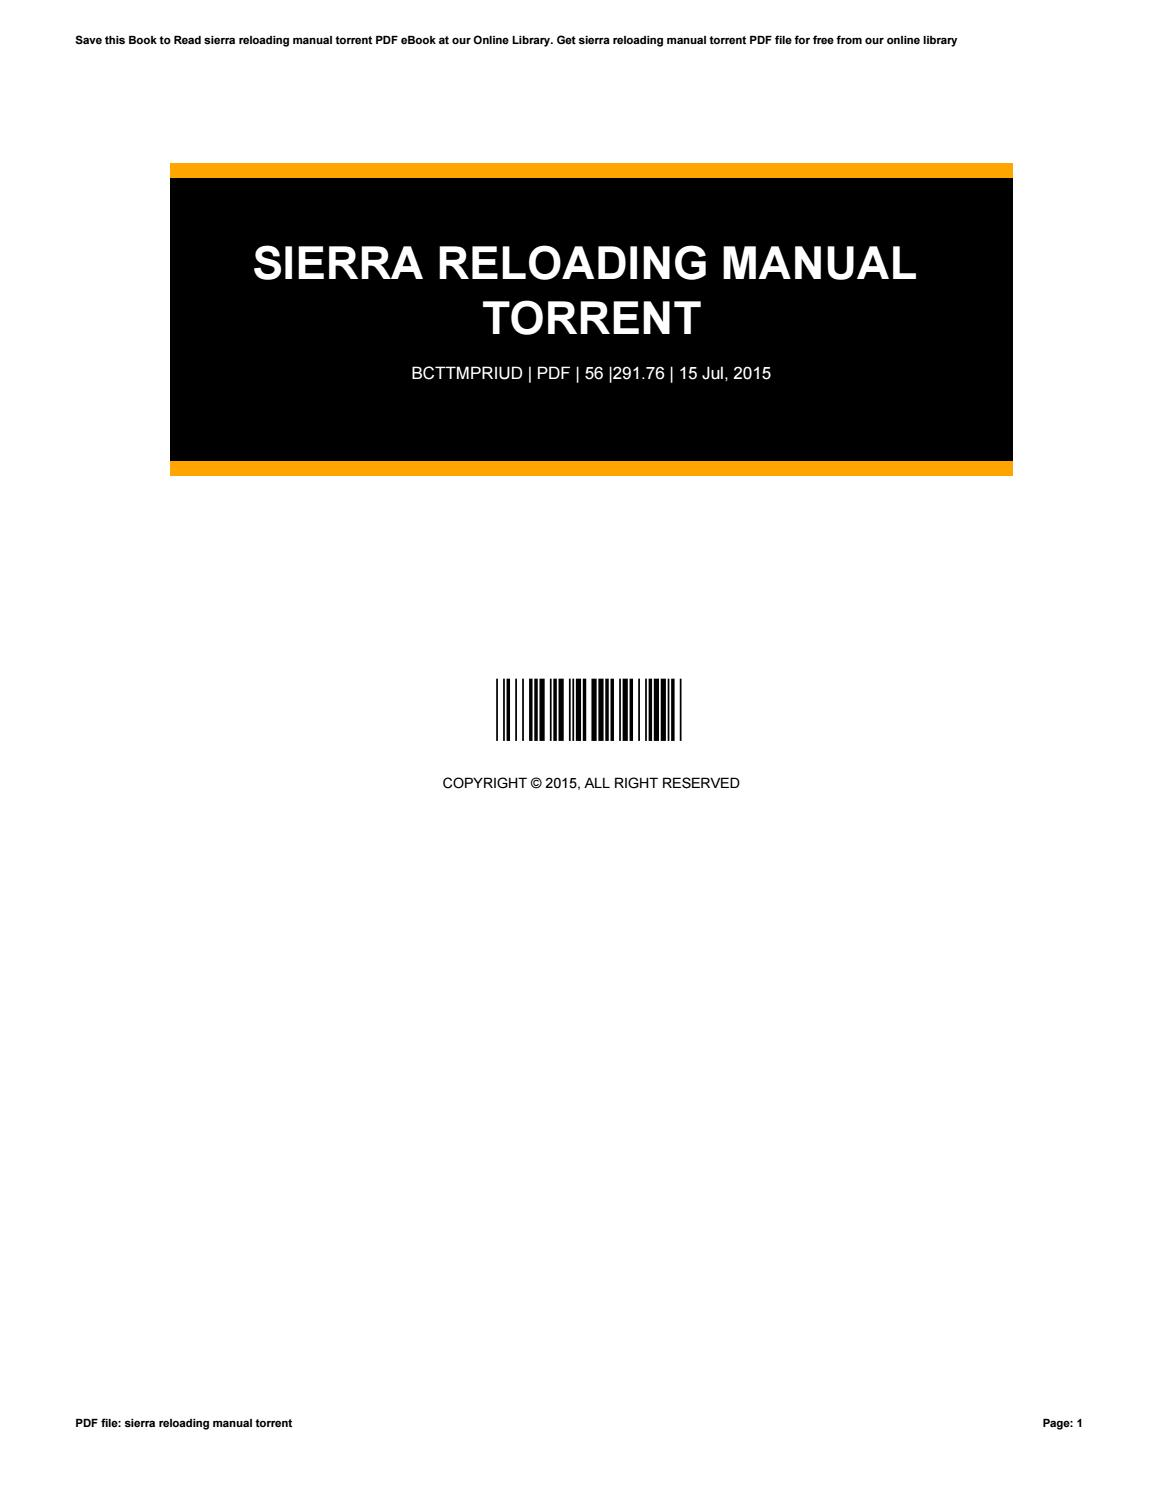 Sierra Reloading Manual 6th Edition Pdf